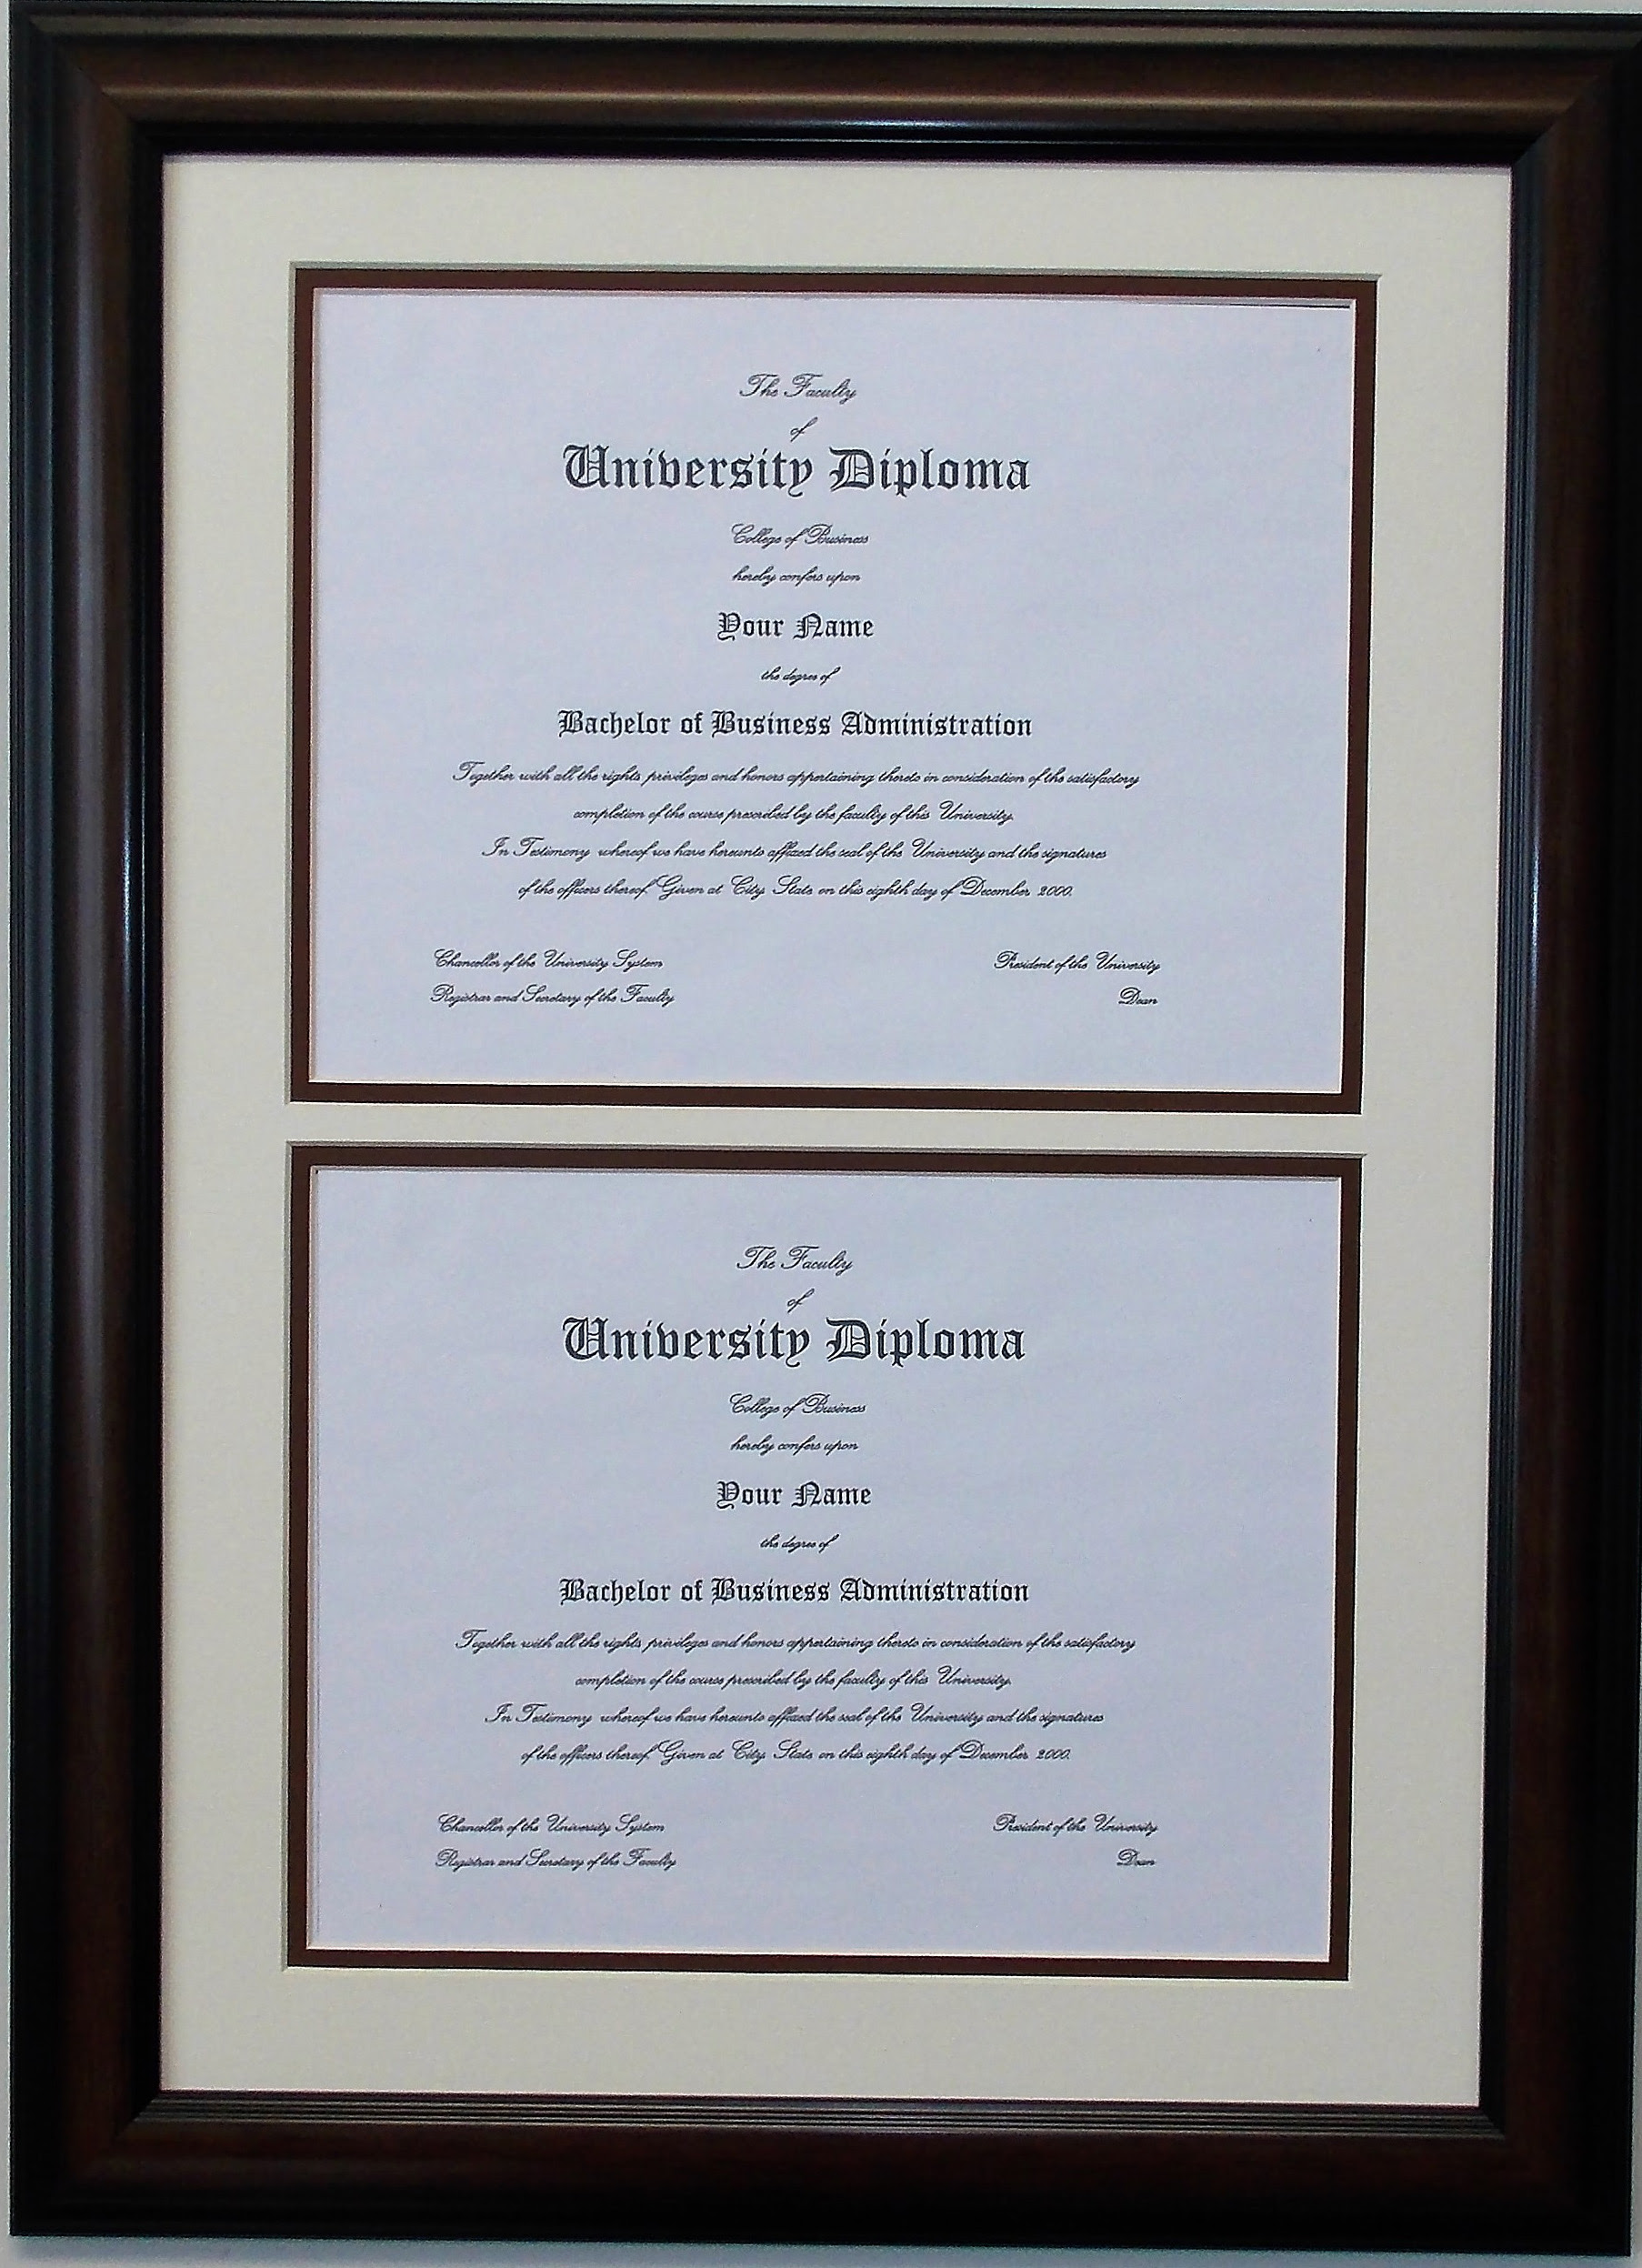 Double Diploma Document Certificate Openings Wood Picture Frame